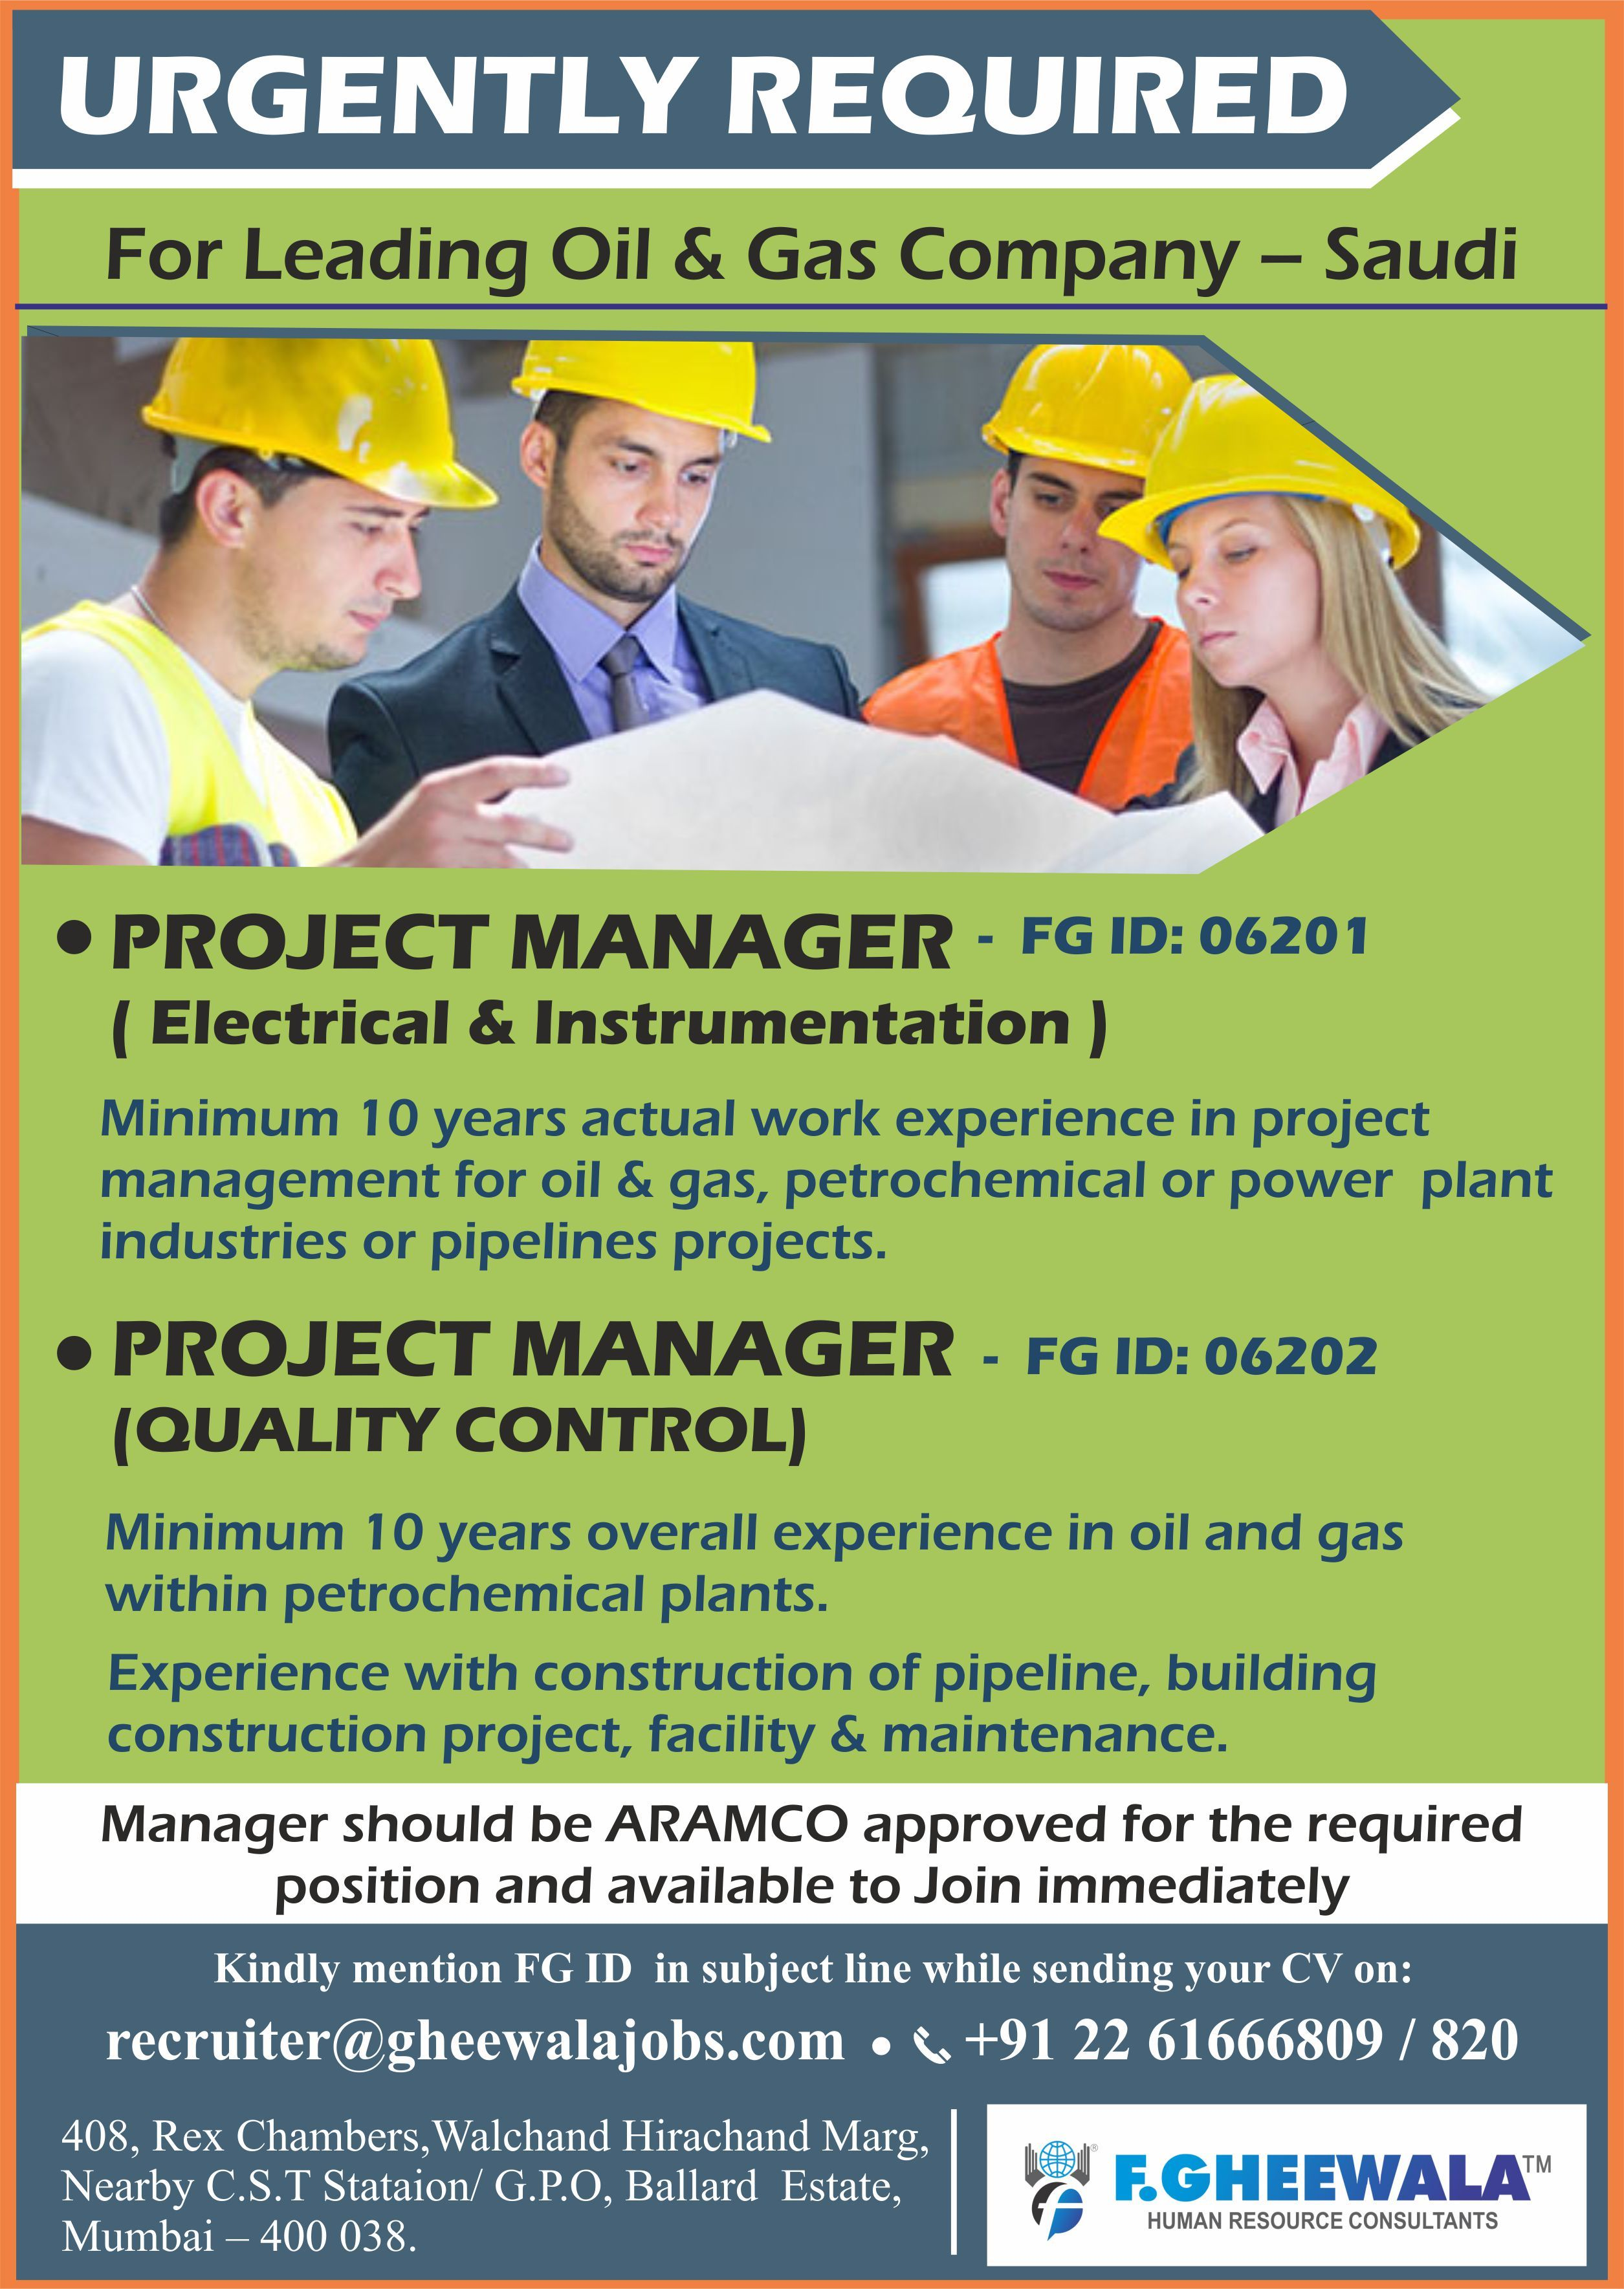 Urgently Required for Leading Oil & Gas Company in Saudi